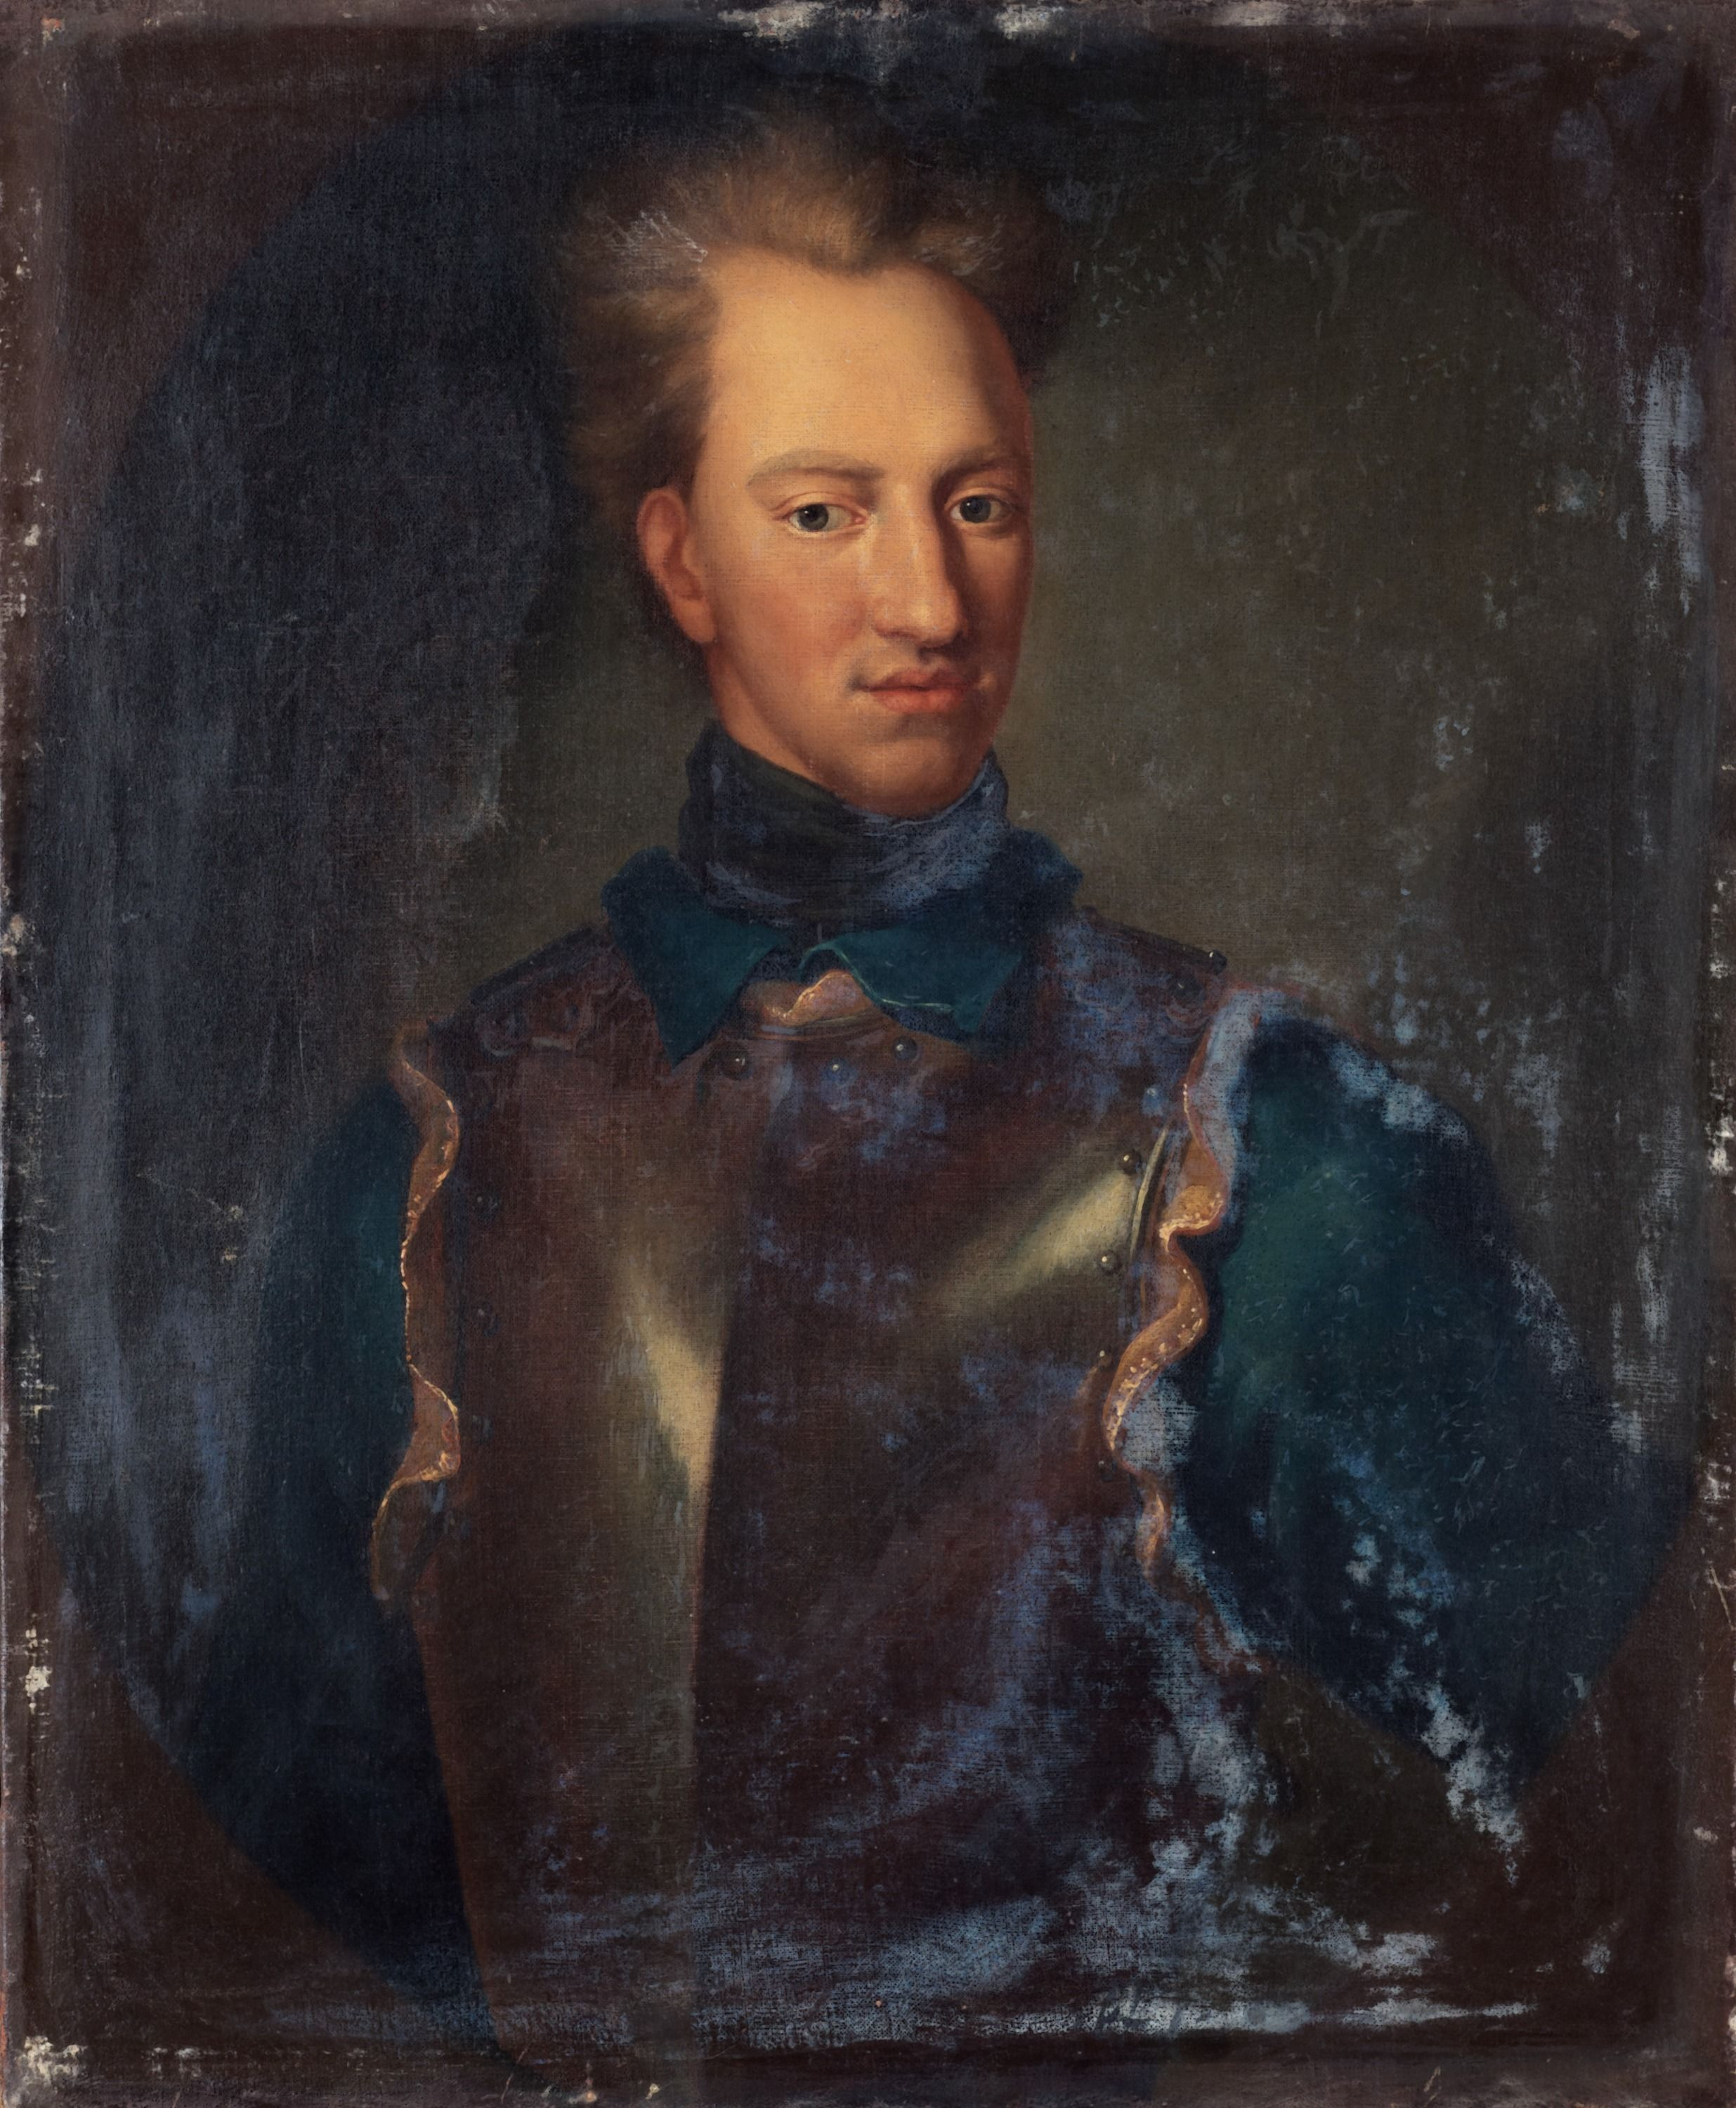 king charles xii The 18th century swedish monarch, charles xii, was the only surviving son of charles xi learn more at biographycom.